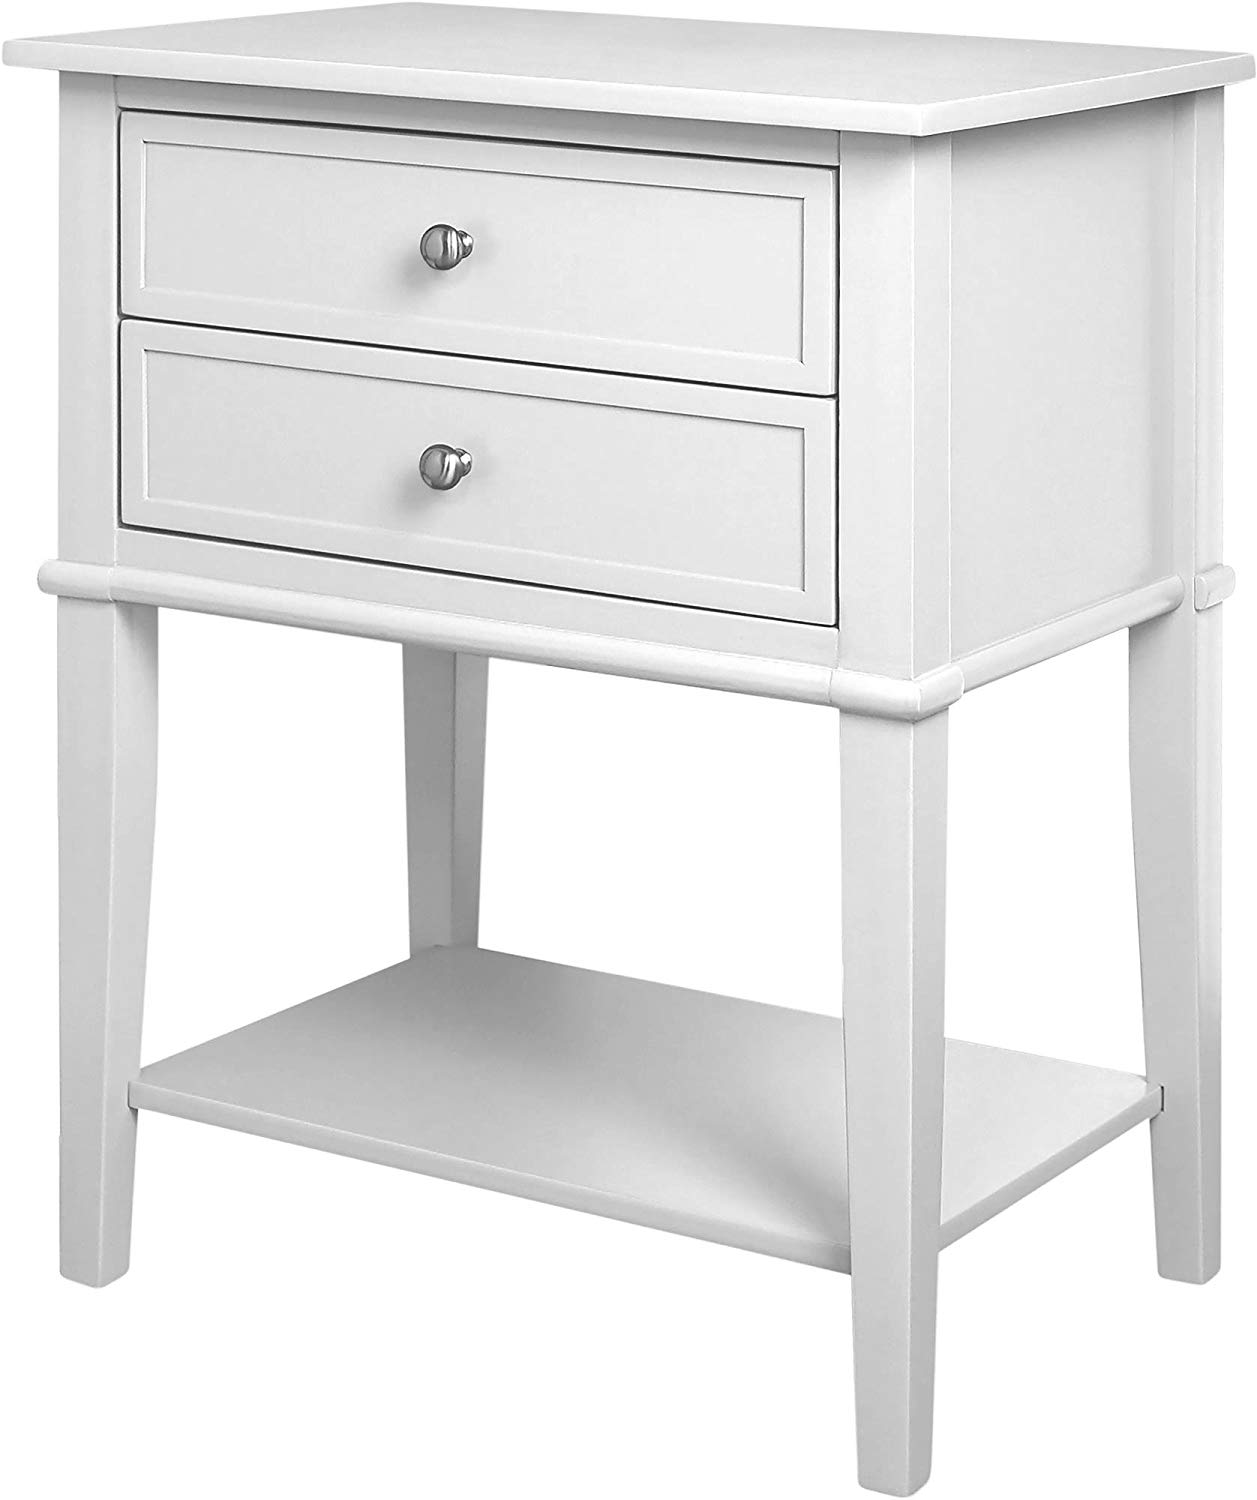 ameriwood home franklin accent table with drawers white kitchen dining nesting tables round skirts decorator glass patio umbrella hole small decorative closeout furniture marble